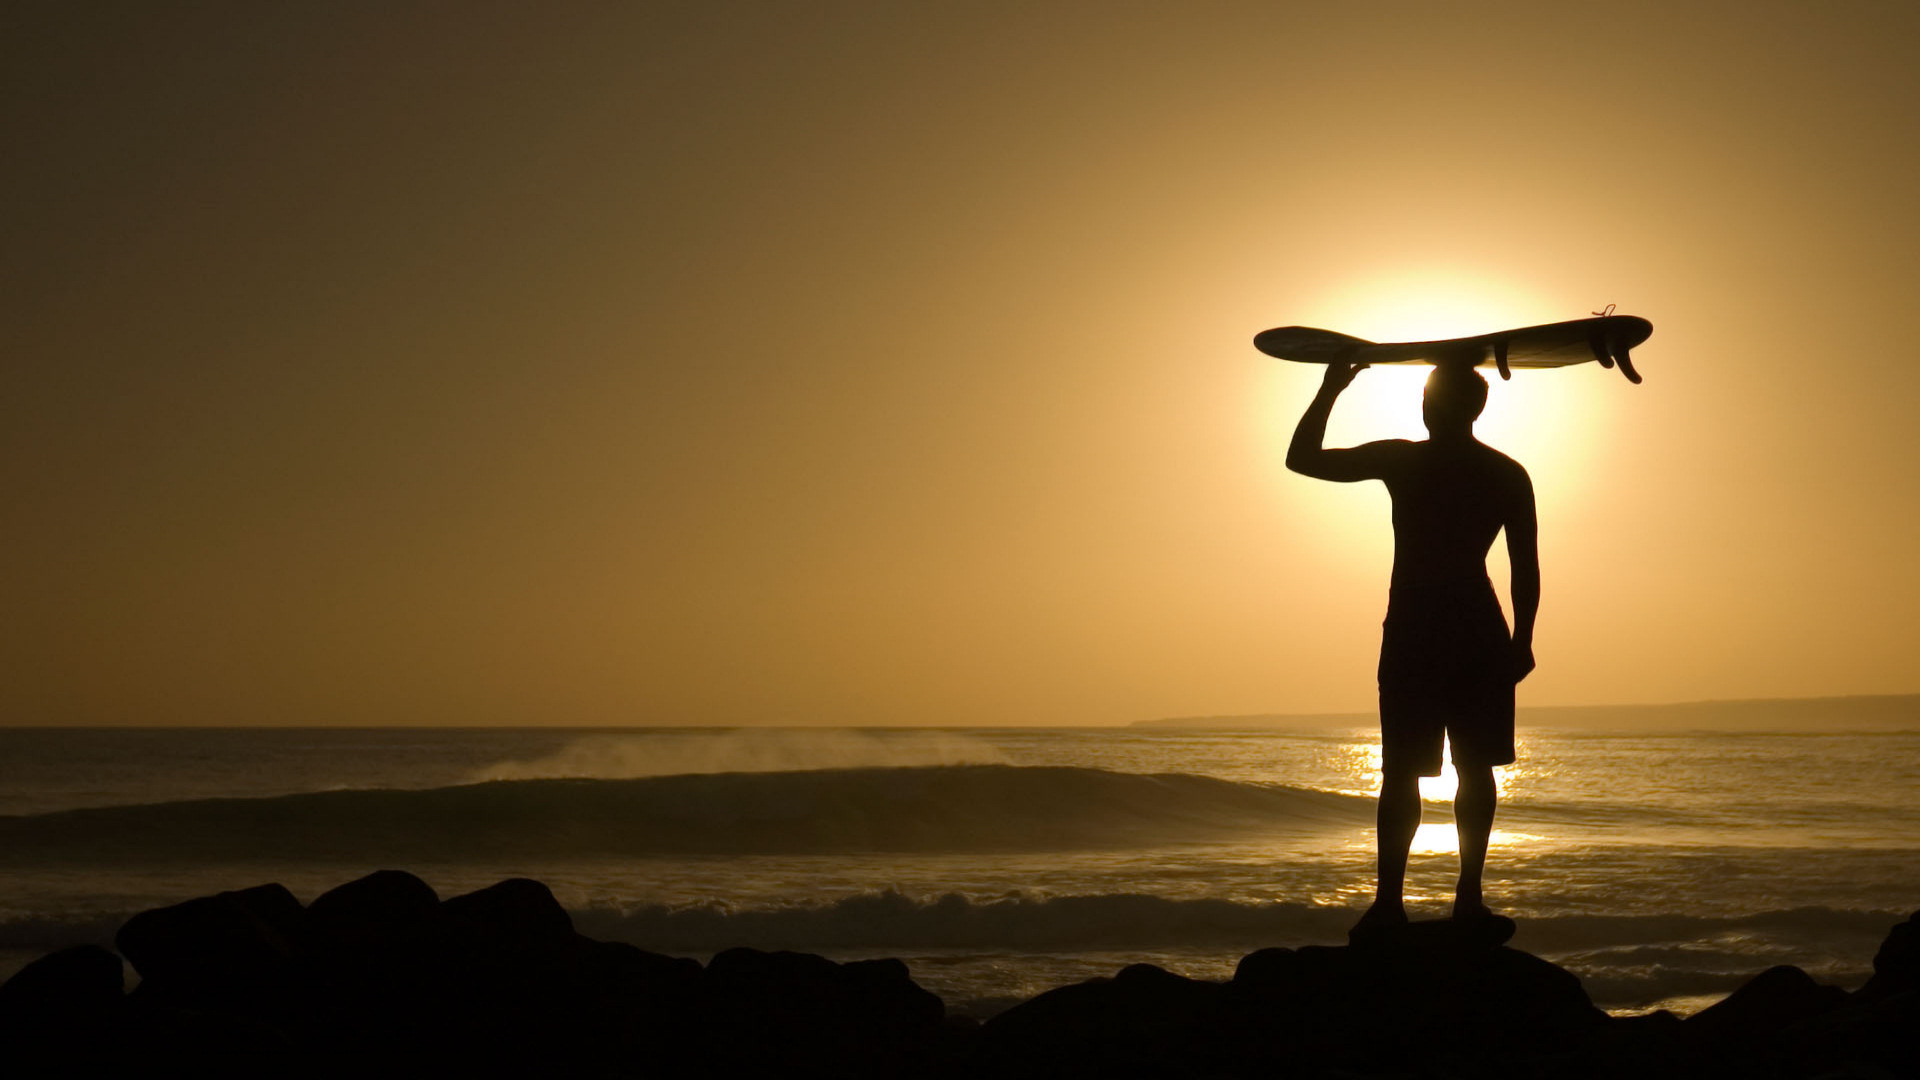 surfer at sunset wallpapers